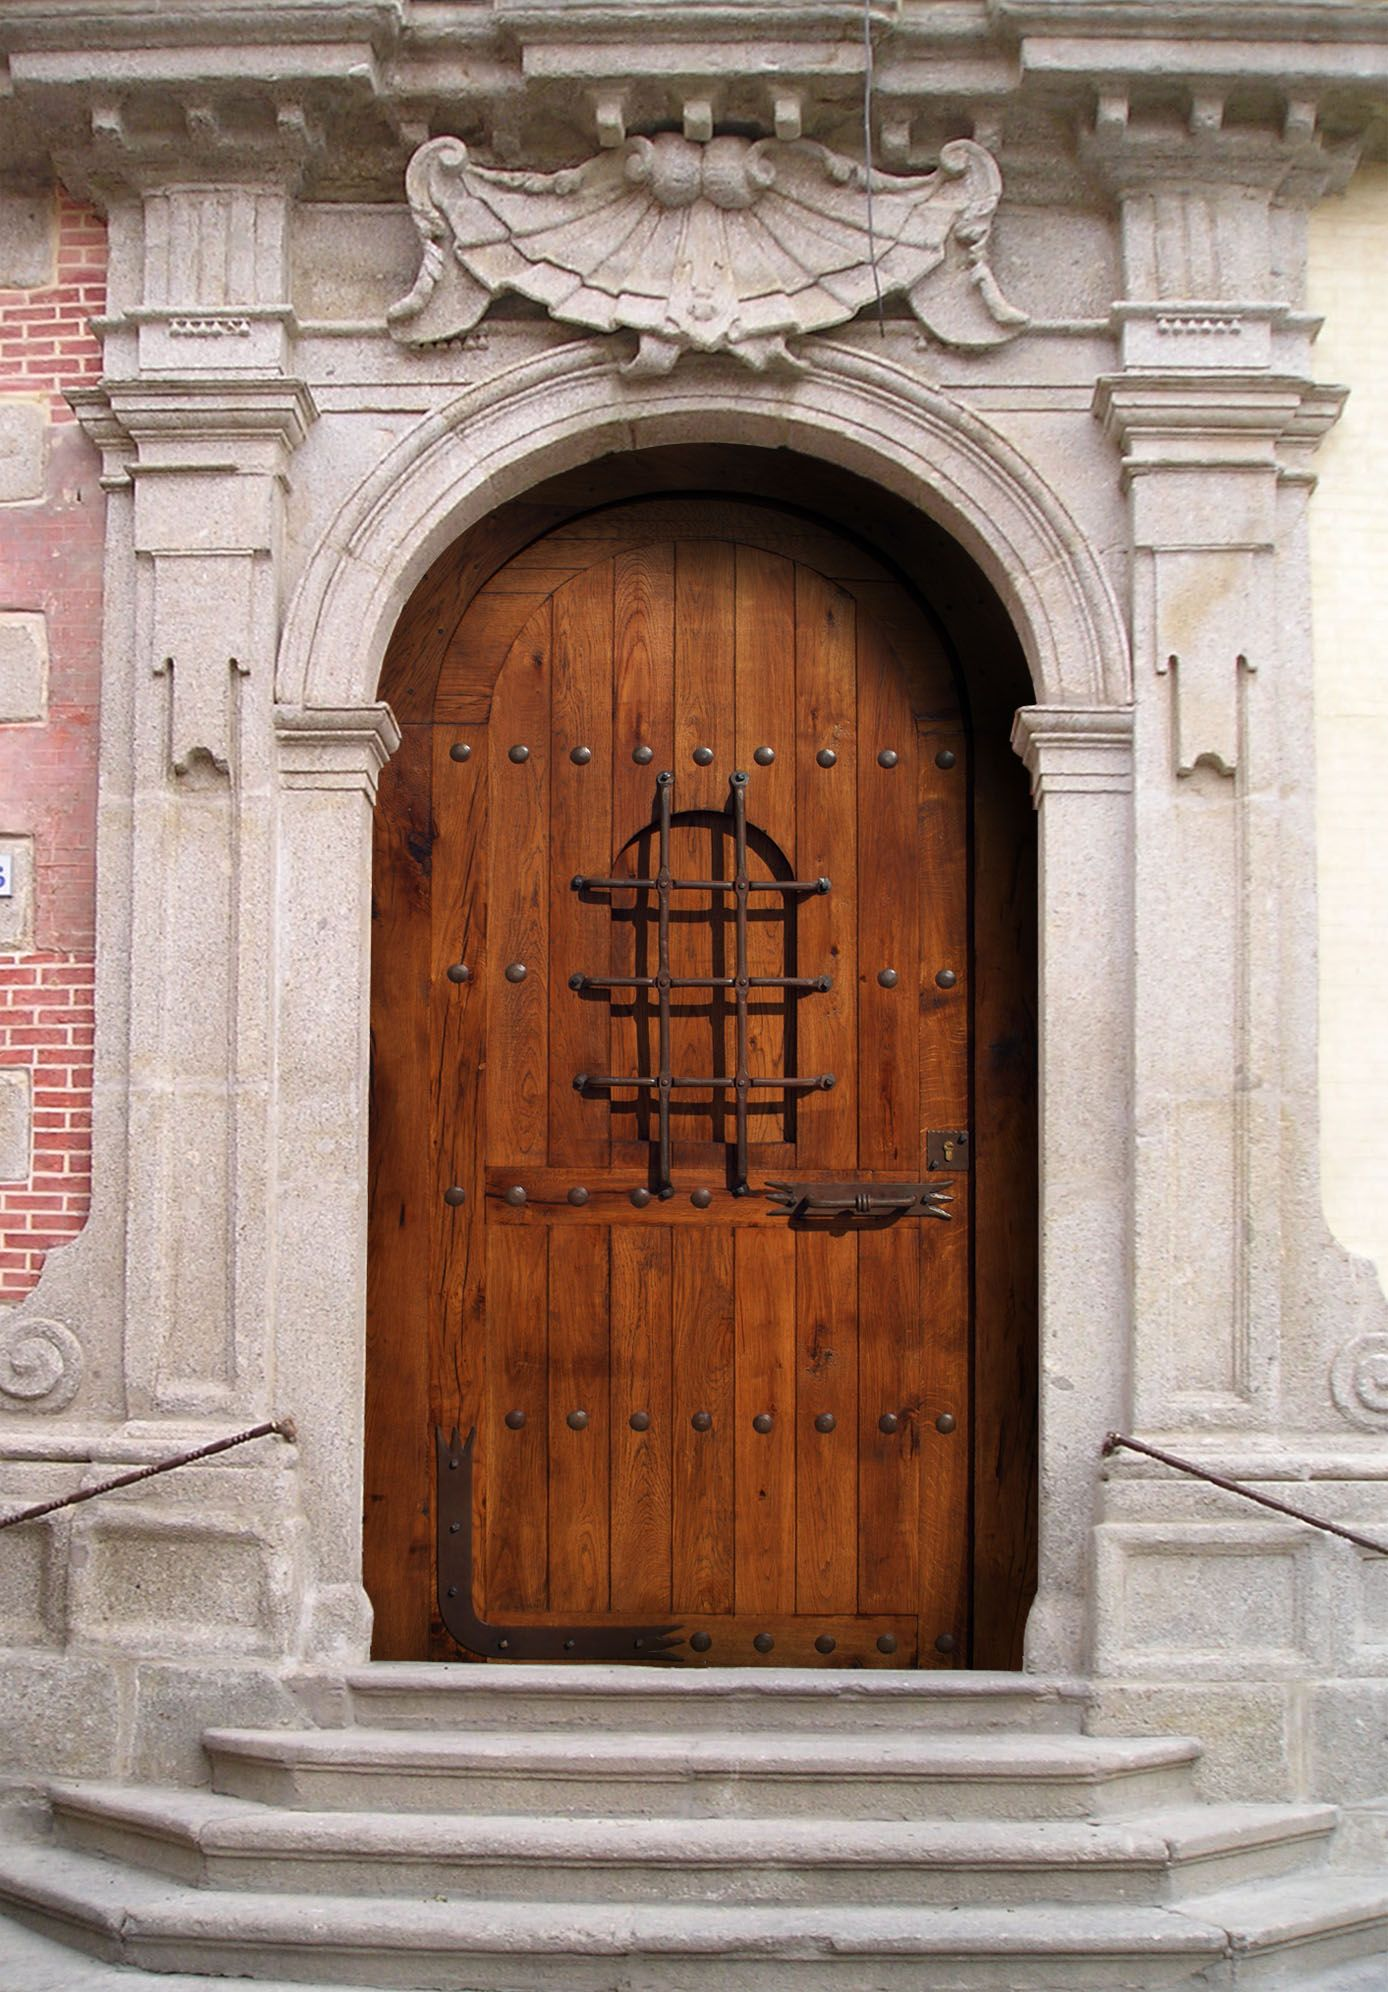 Puertas de madera rusticas google search for my home pinterest doors wood doors and - Puertas de exterior rusticas ...